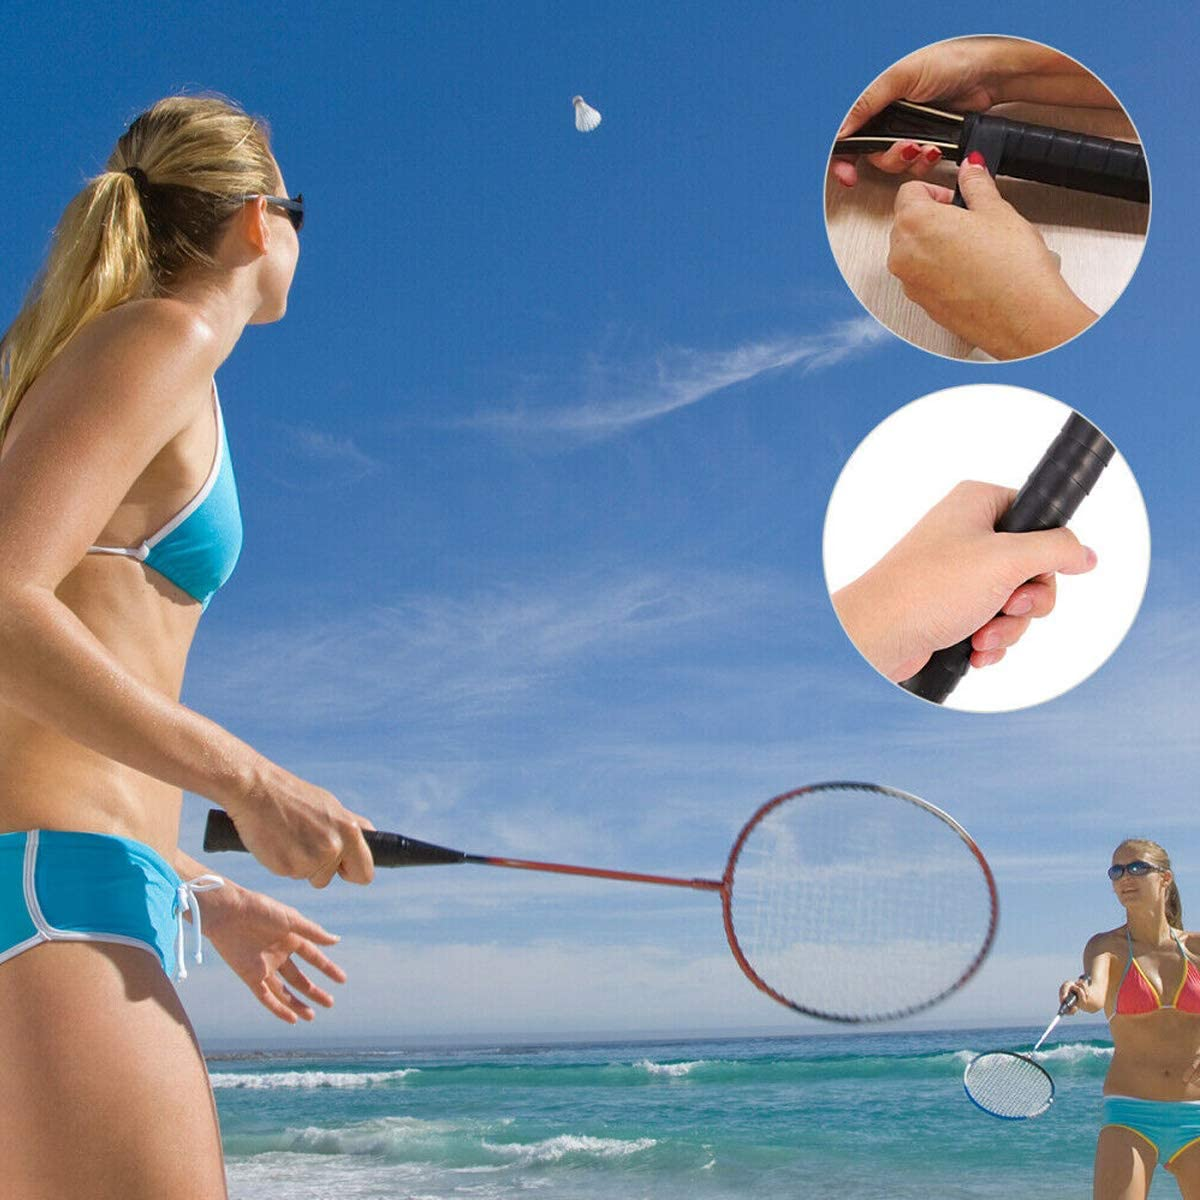 Hechengdianzi Overgrips Racket Grip Absorb Sweat Stretchy Pickleball Badminton Tennis Squash Protector Racquet Grips